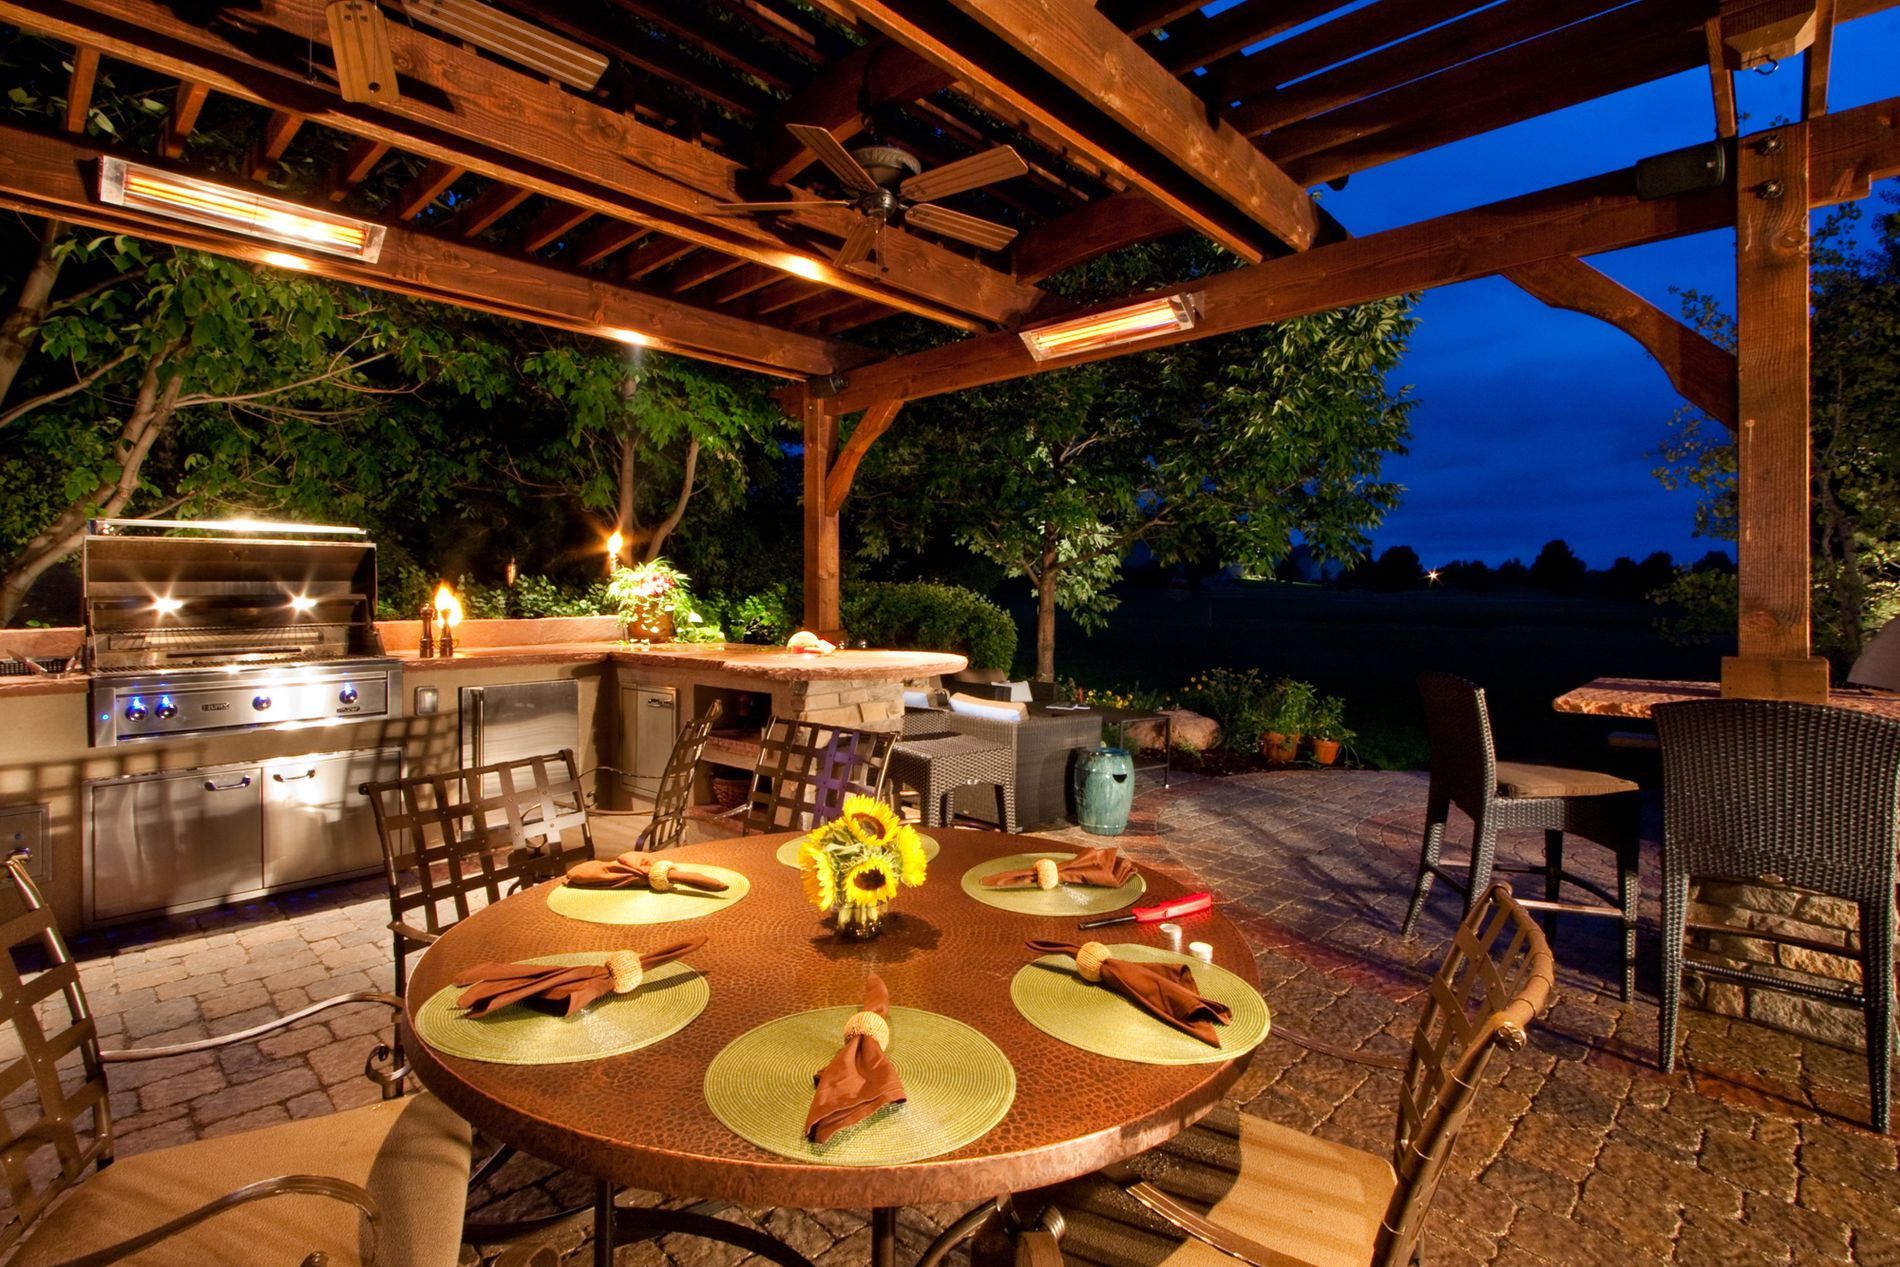 Custom designed pergola with heaters and ceiling fans